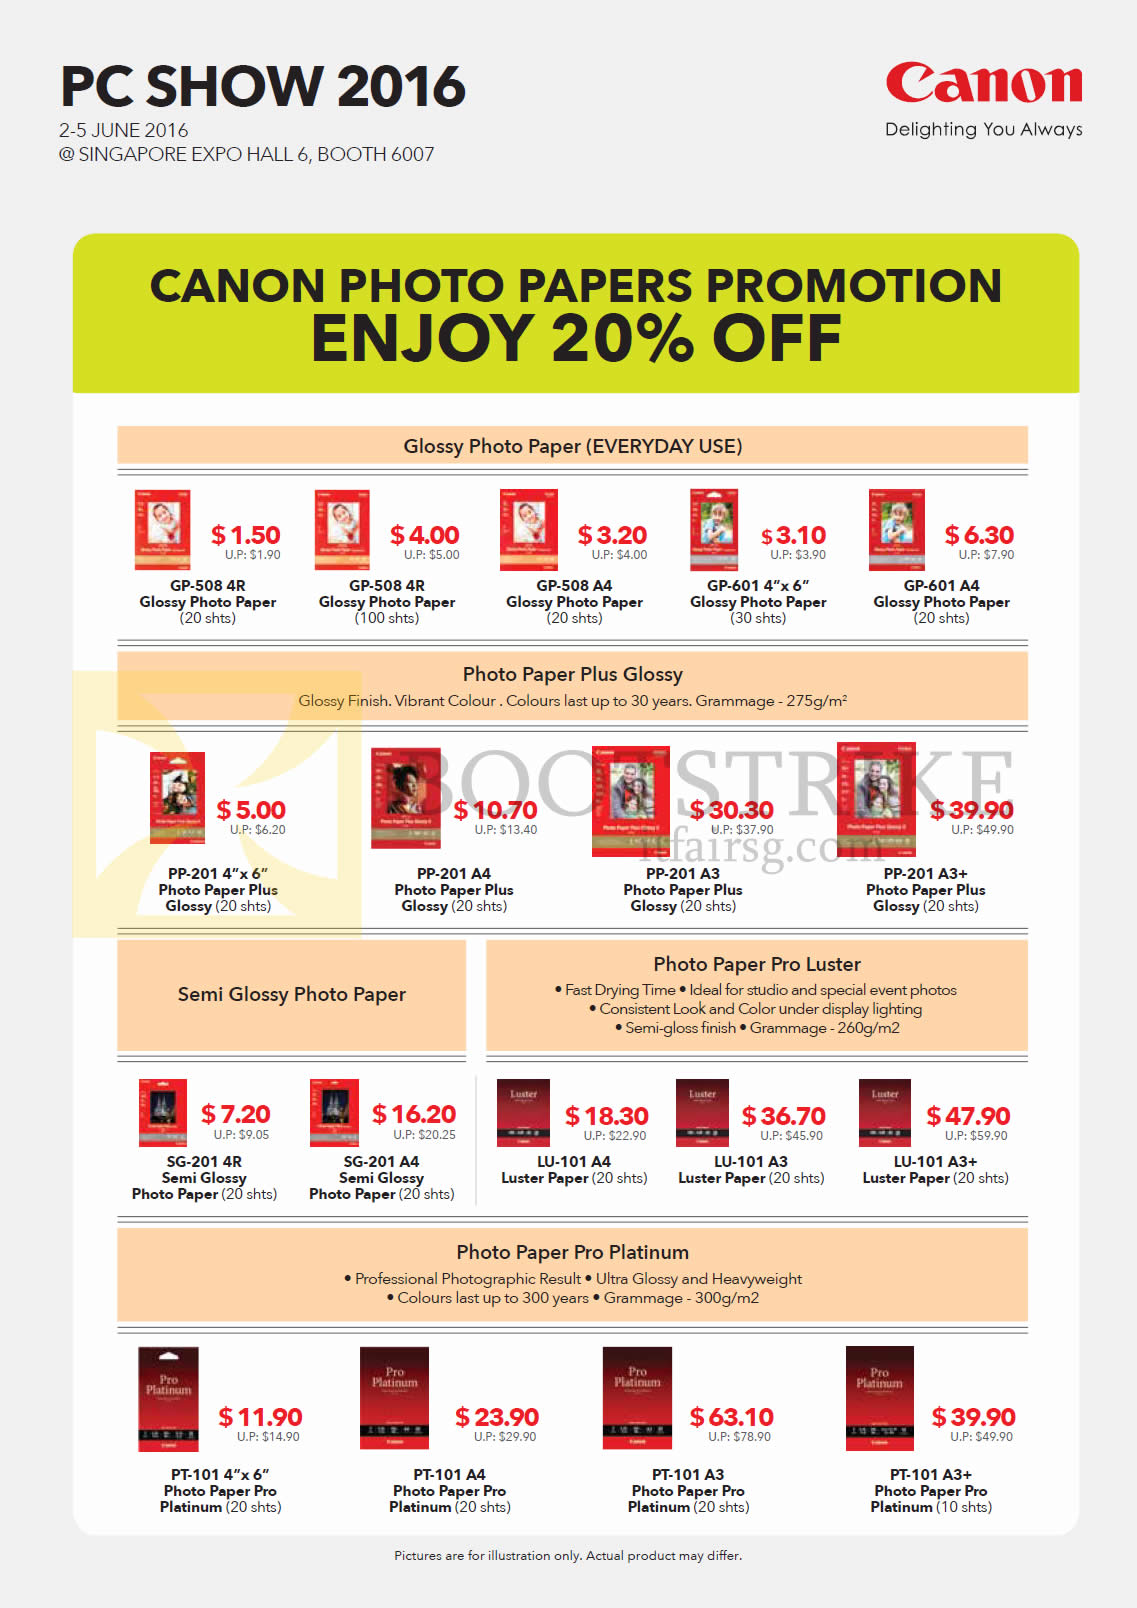 PC SHOW 2016 price list image brochure of Canon Photo Papers Promotion GP-508, 601, PP-201, SG-201, LU-101, PT-101